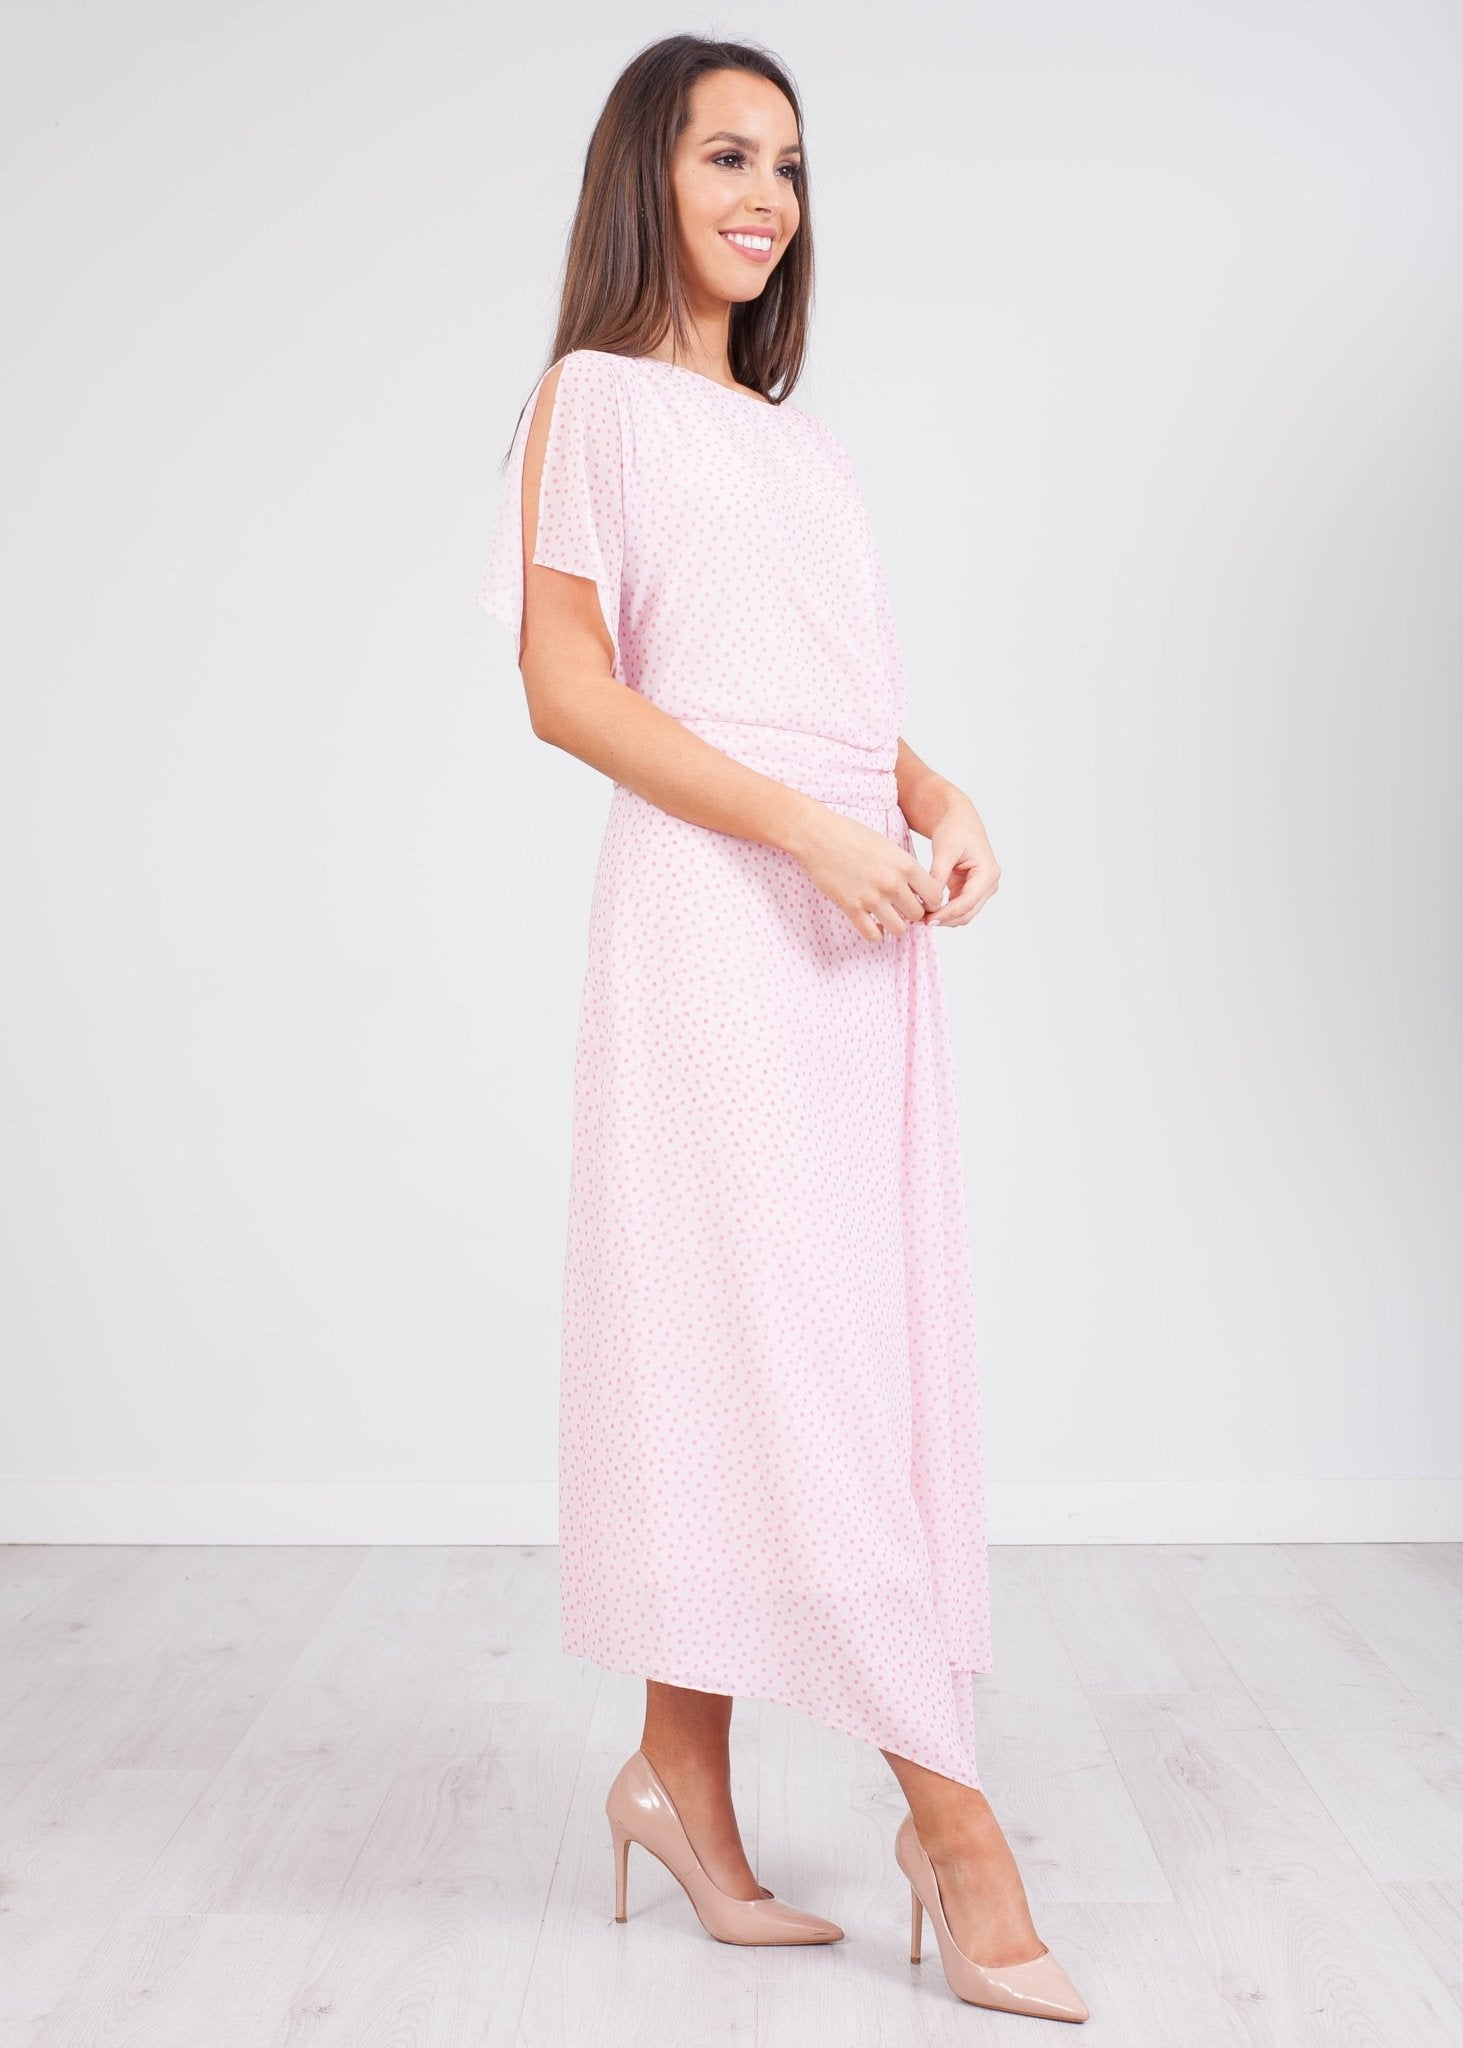 Carla Pink Polka Dot Dress - The Walk in Wardrobe